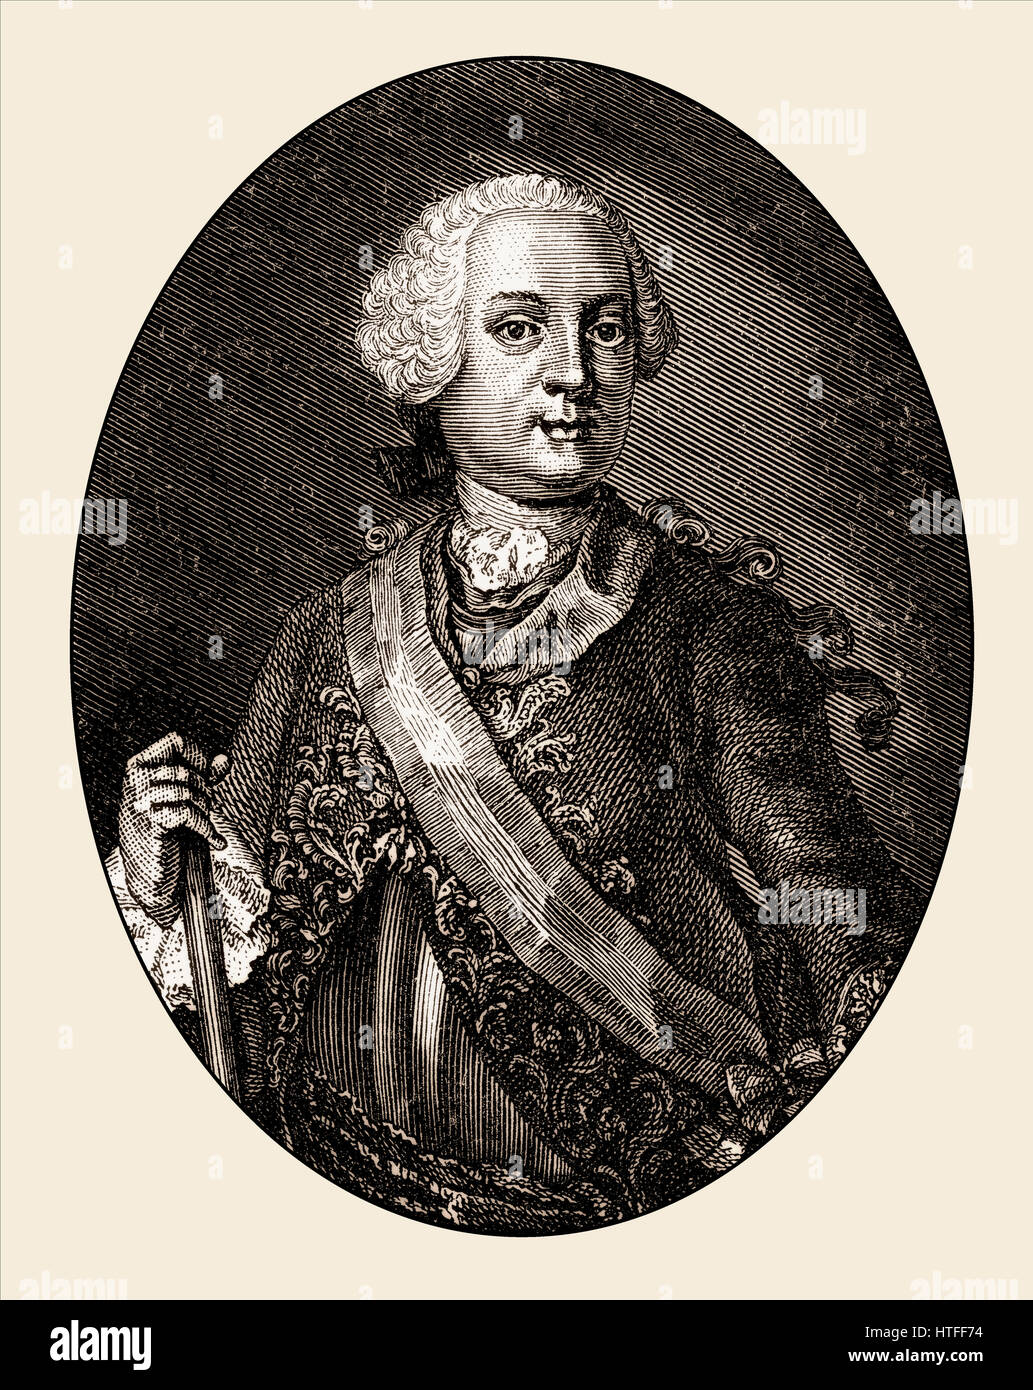 Leopold Joseph Graf von Daun, Prince of Thiano, 1705 - 1766, an imperial Austrian field marshal and commander in - Stock Image